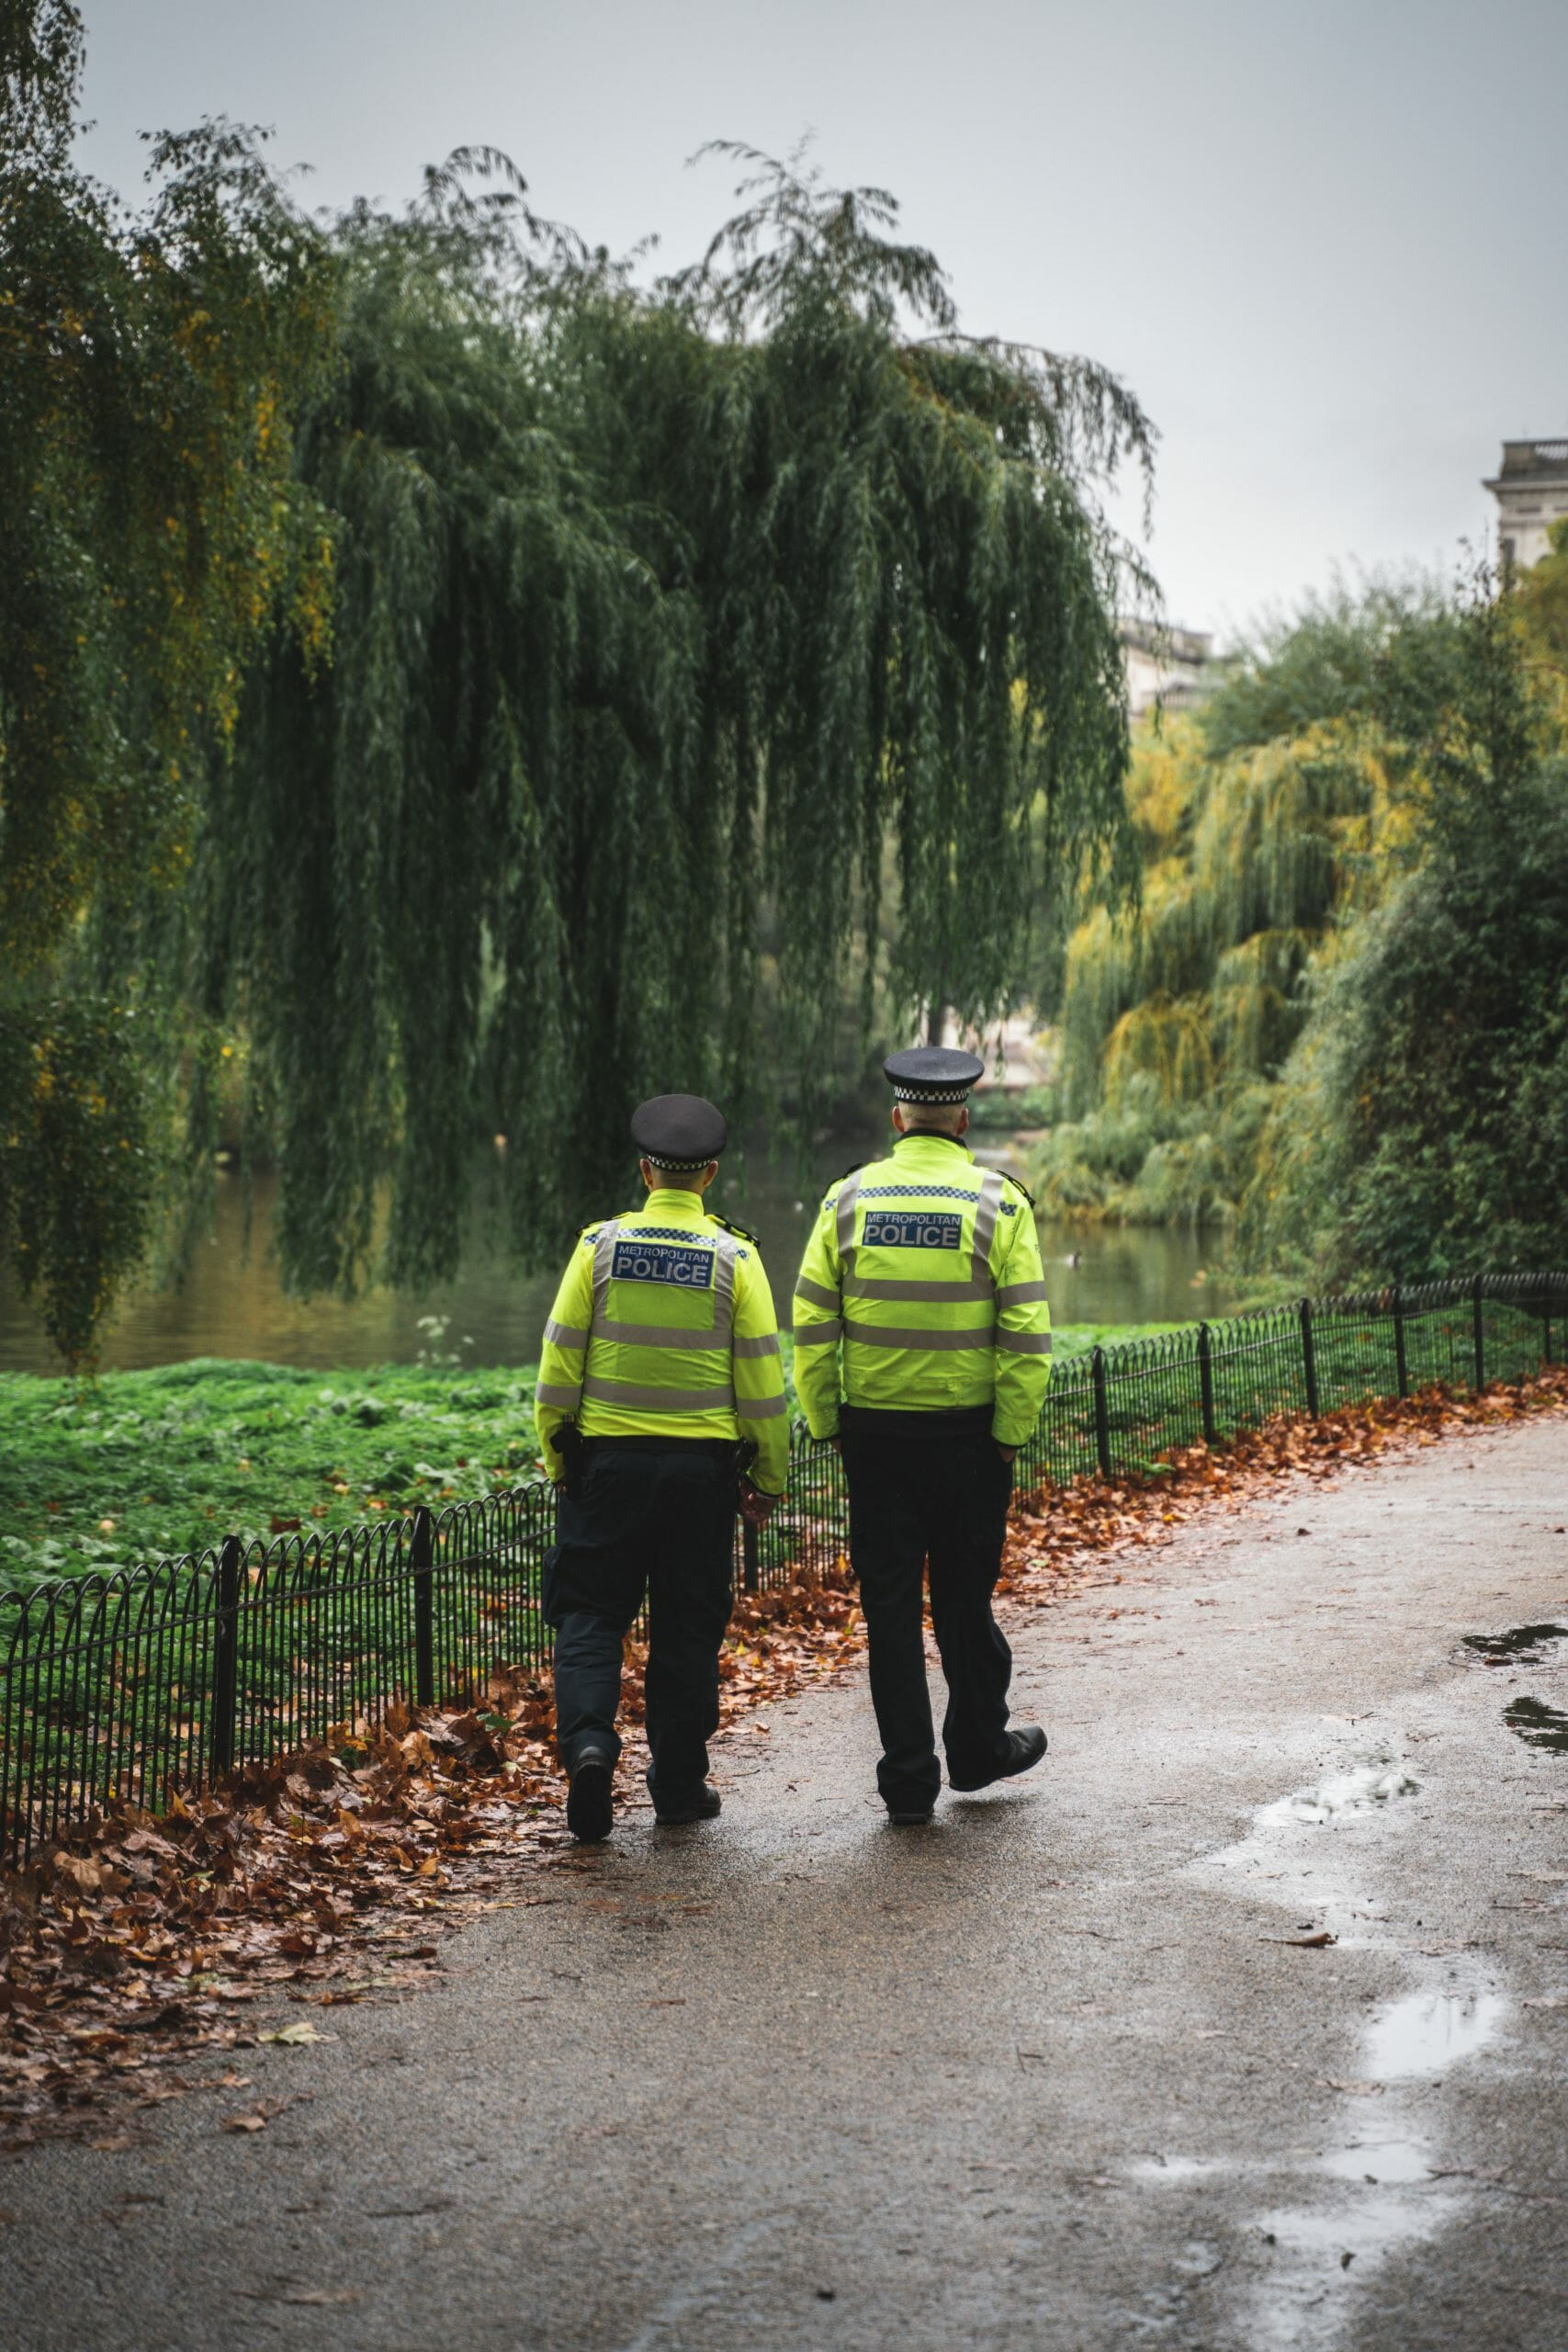 Police Graduate Schemes and Routes into Policing